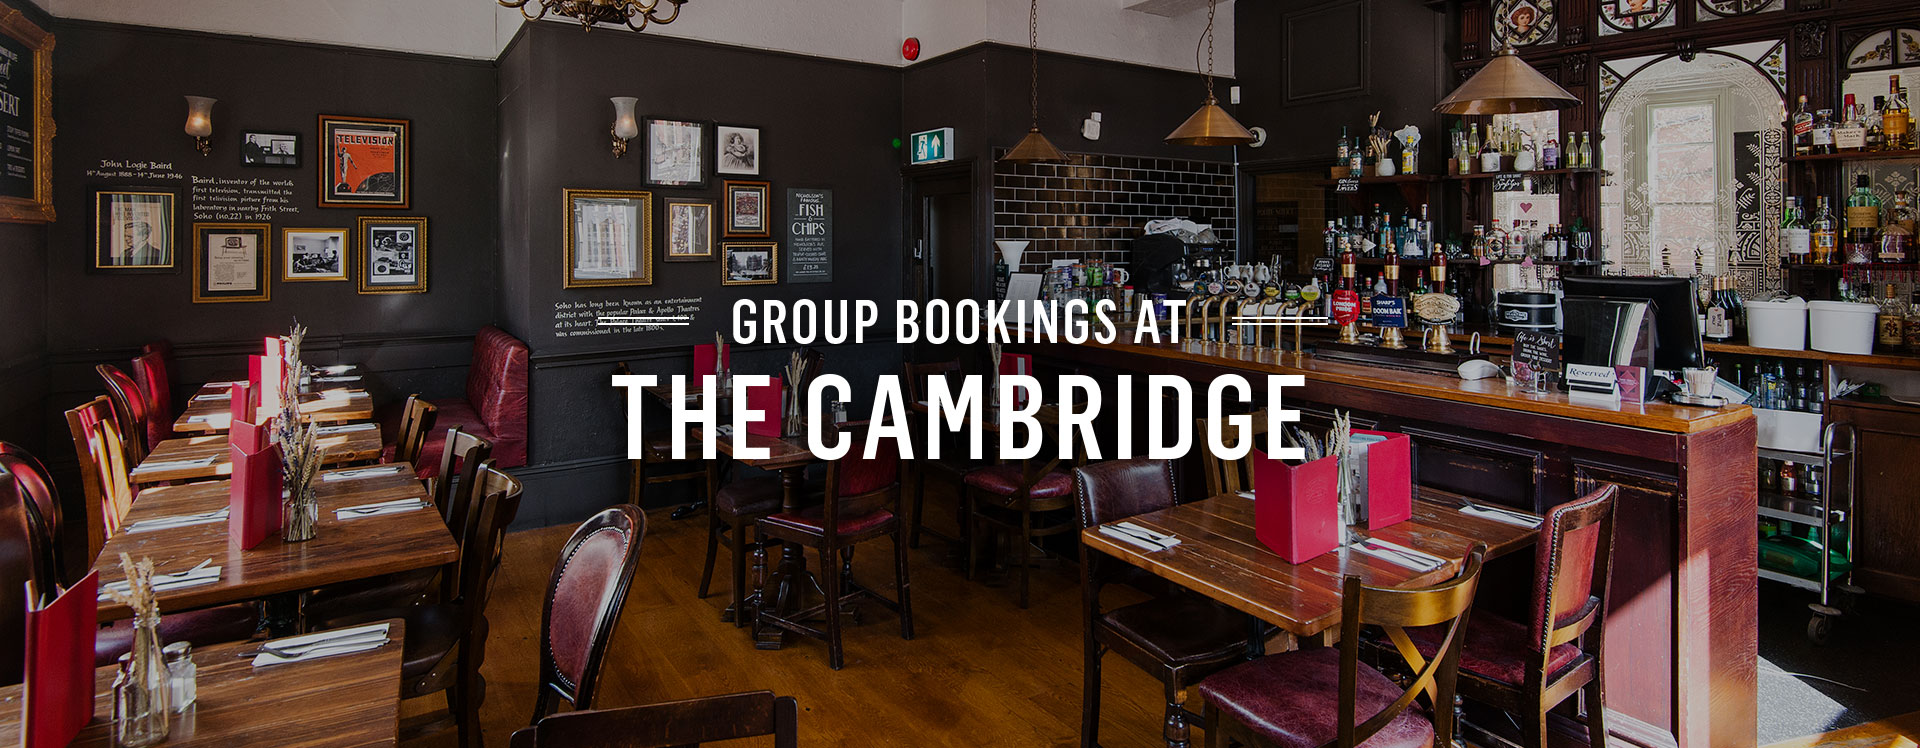 Group Bookings at The Cambridge